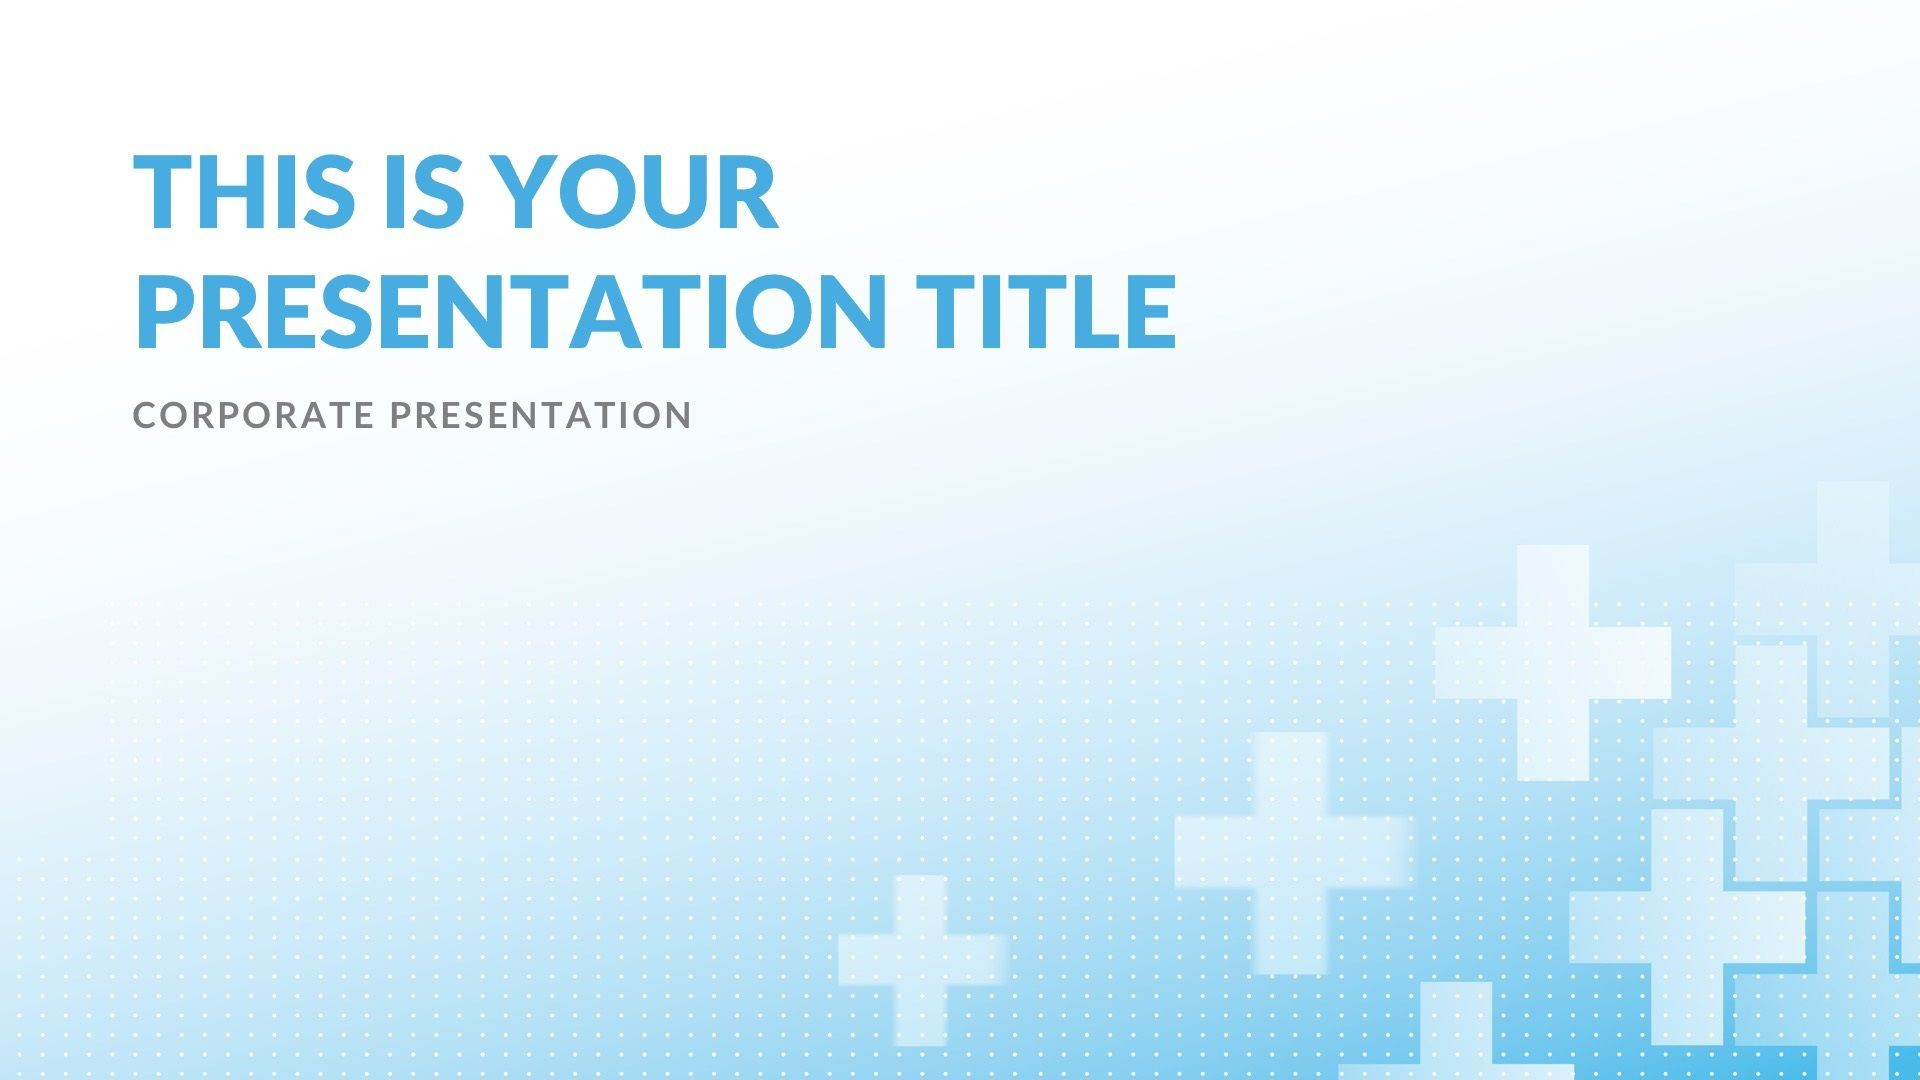 001 Rare Powerpoint Presentation Template Free Download Medical Highest Quality  Animated1920